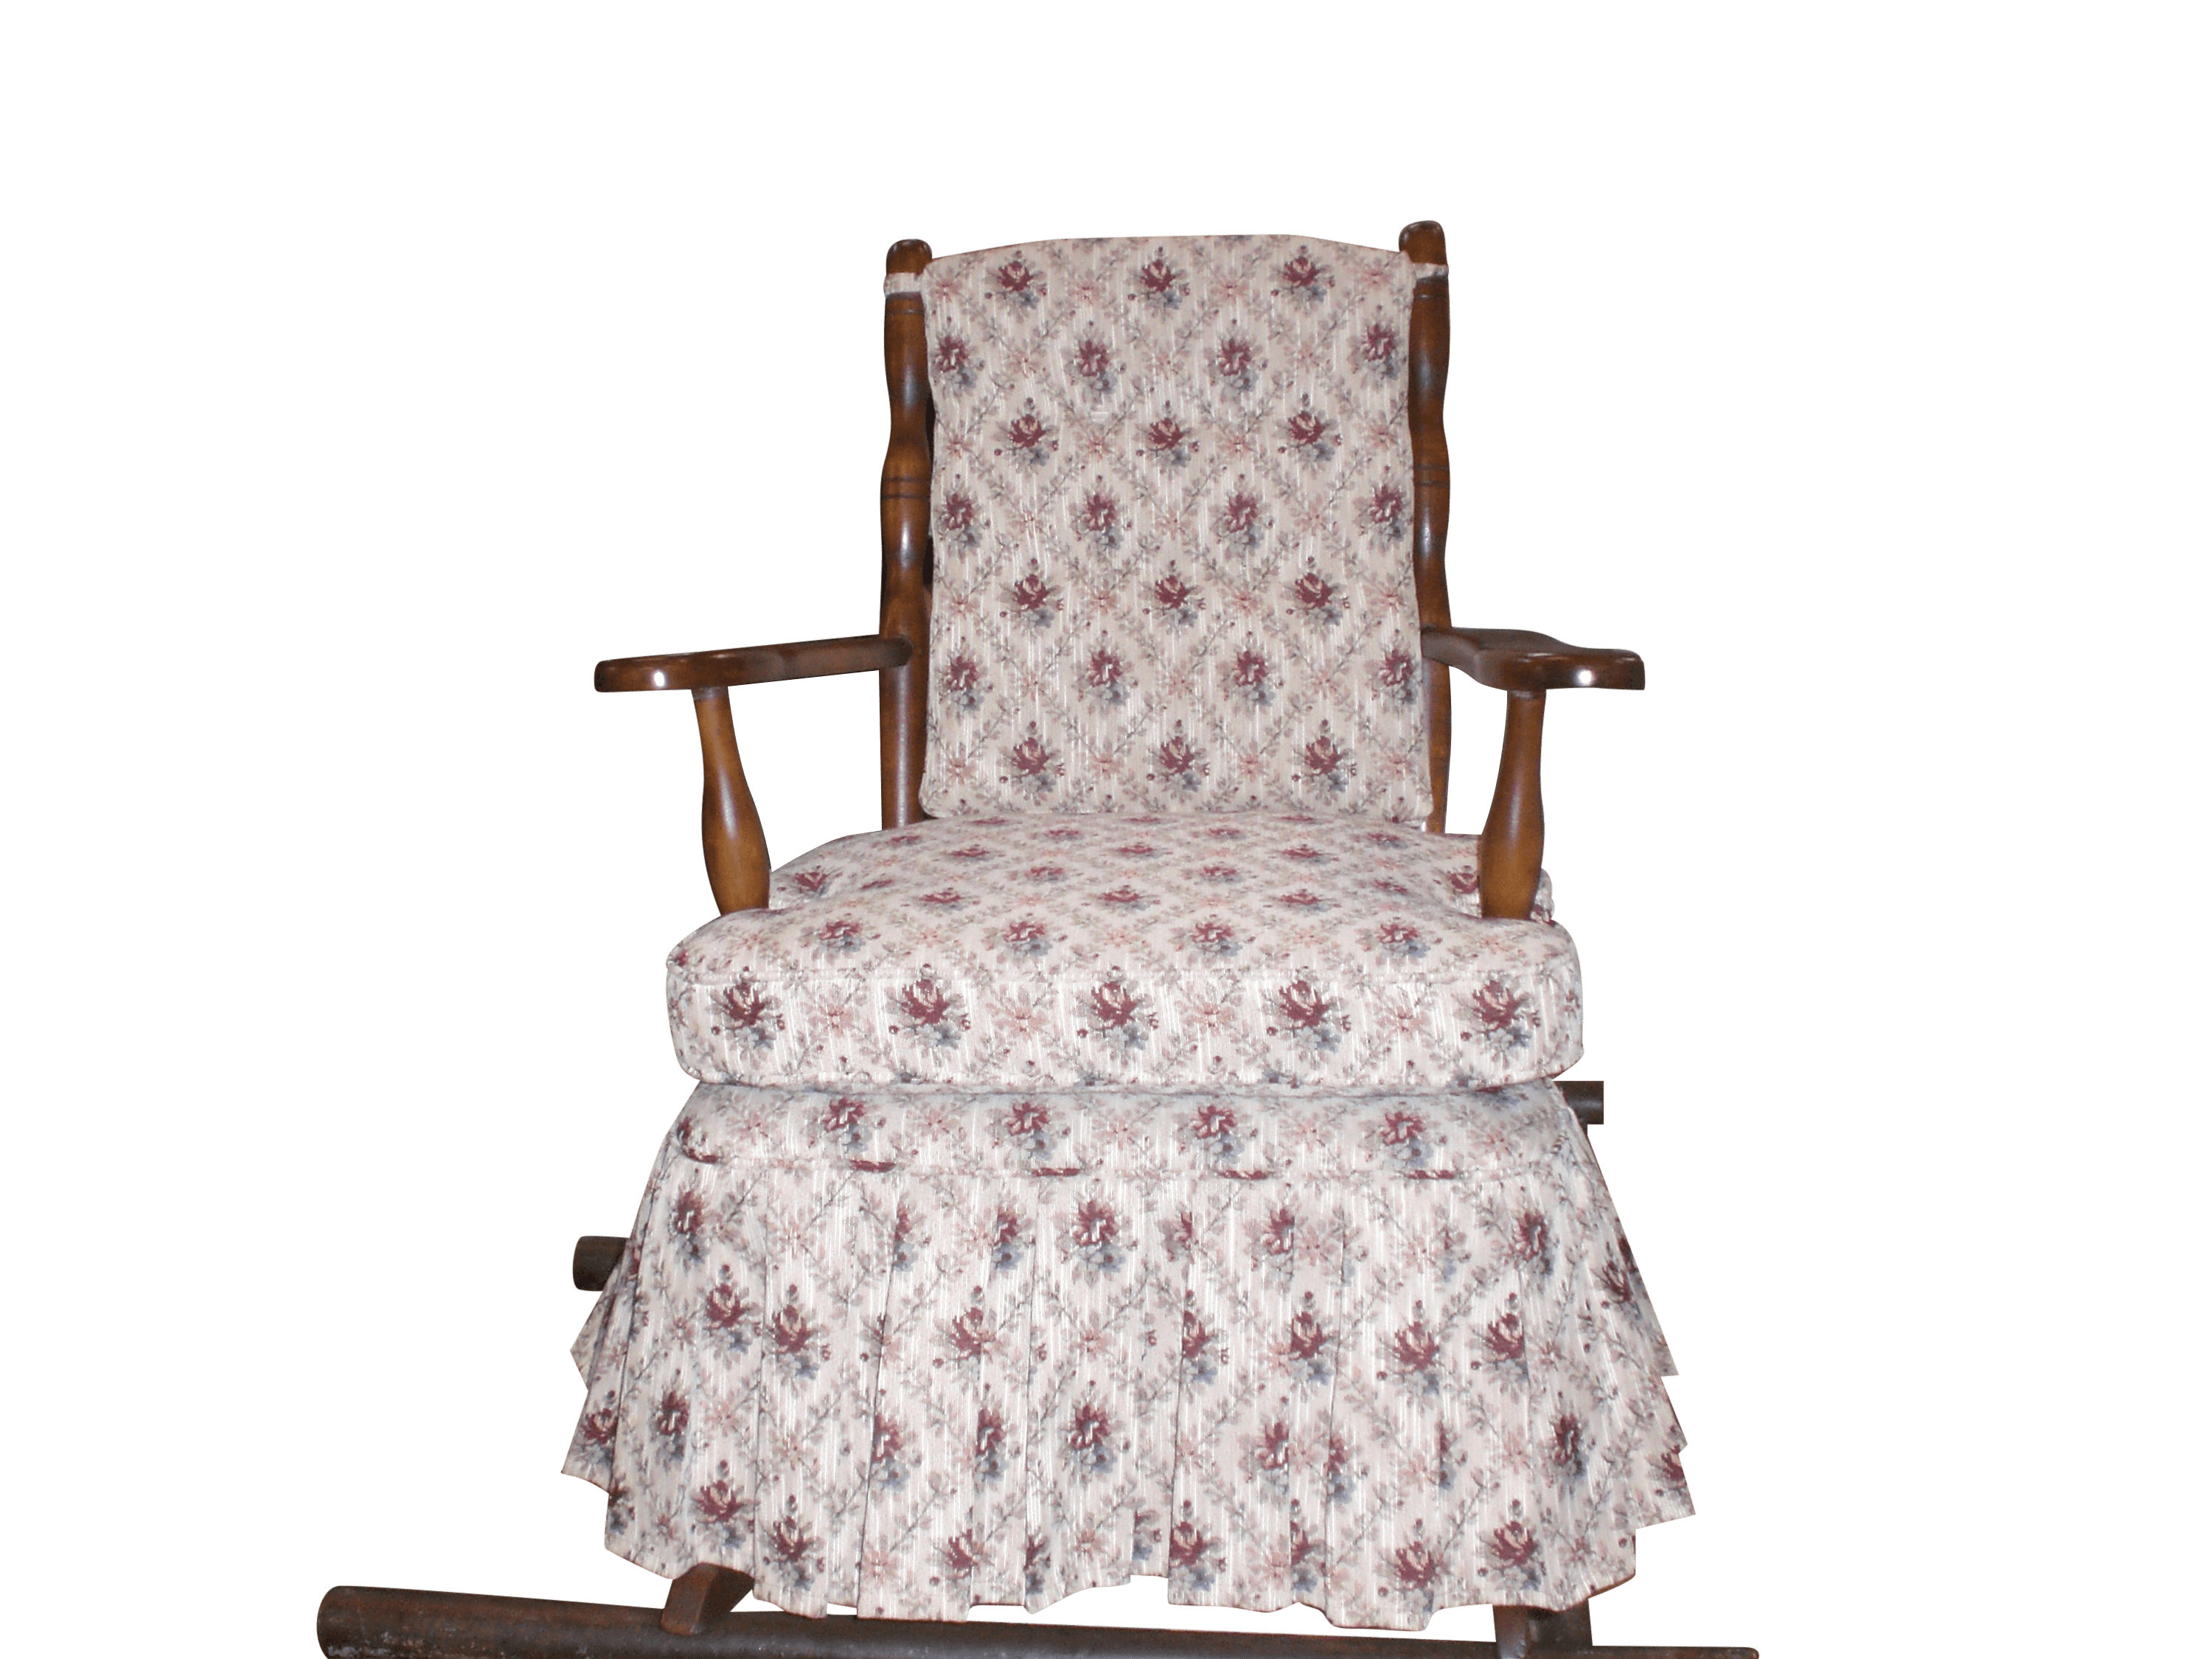 Re-upolstery of wood framed chair